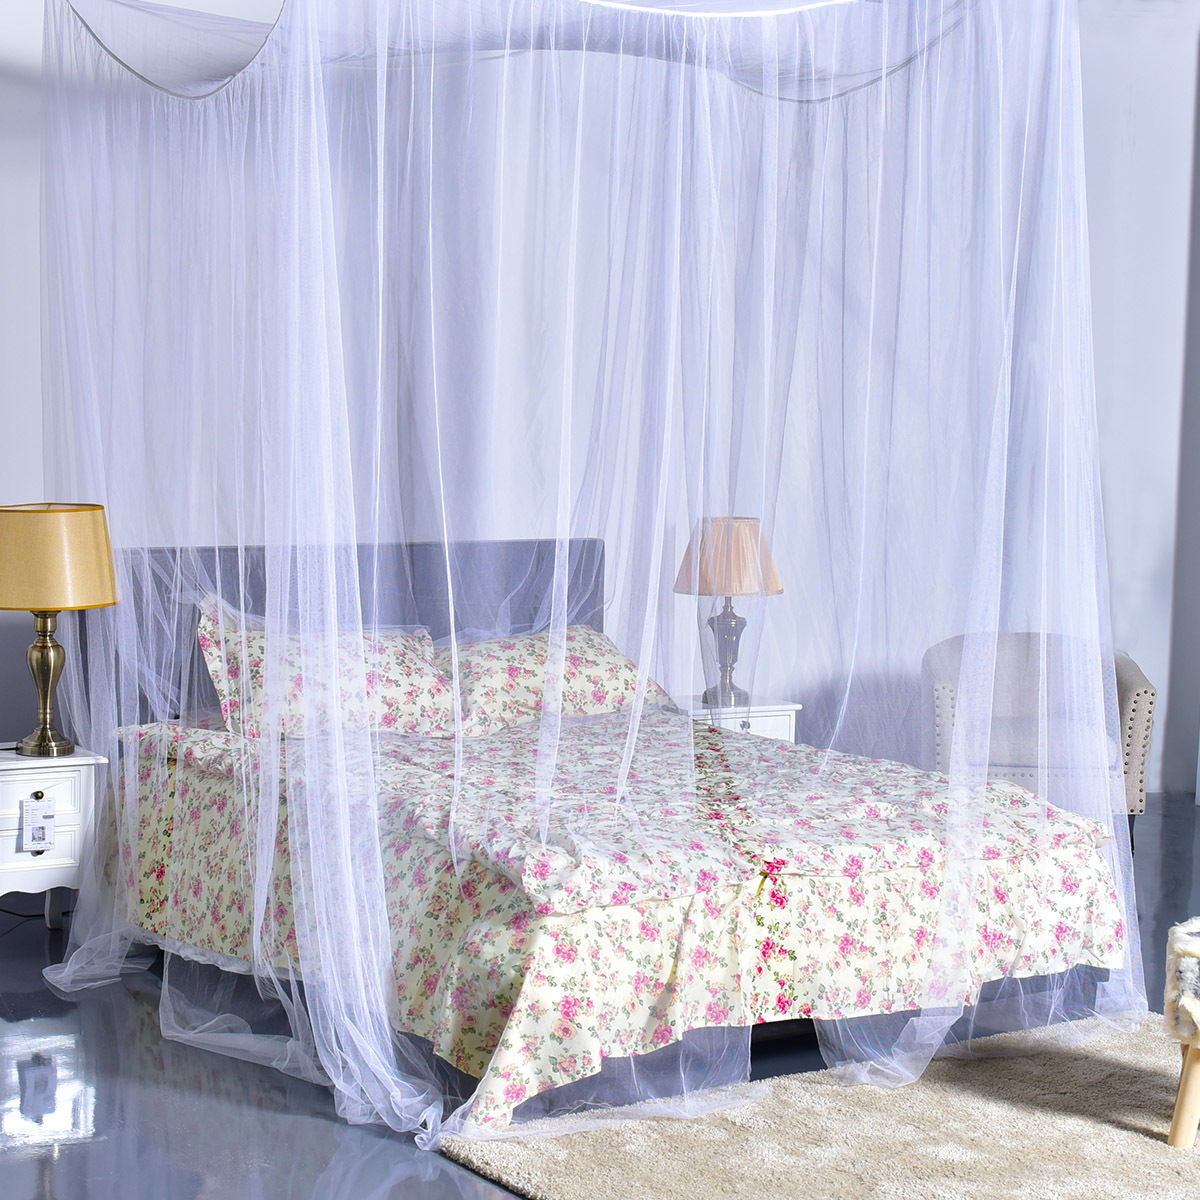 Zimtown Square Bed Netting Mosquito Net Insect Protection Bed Decro White Queen King Size